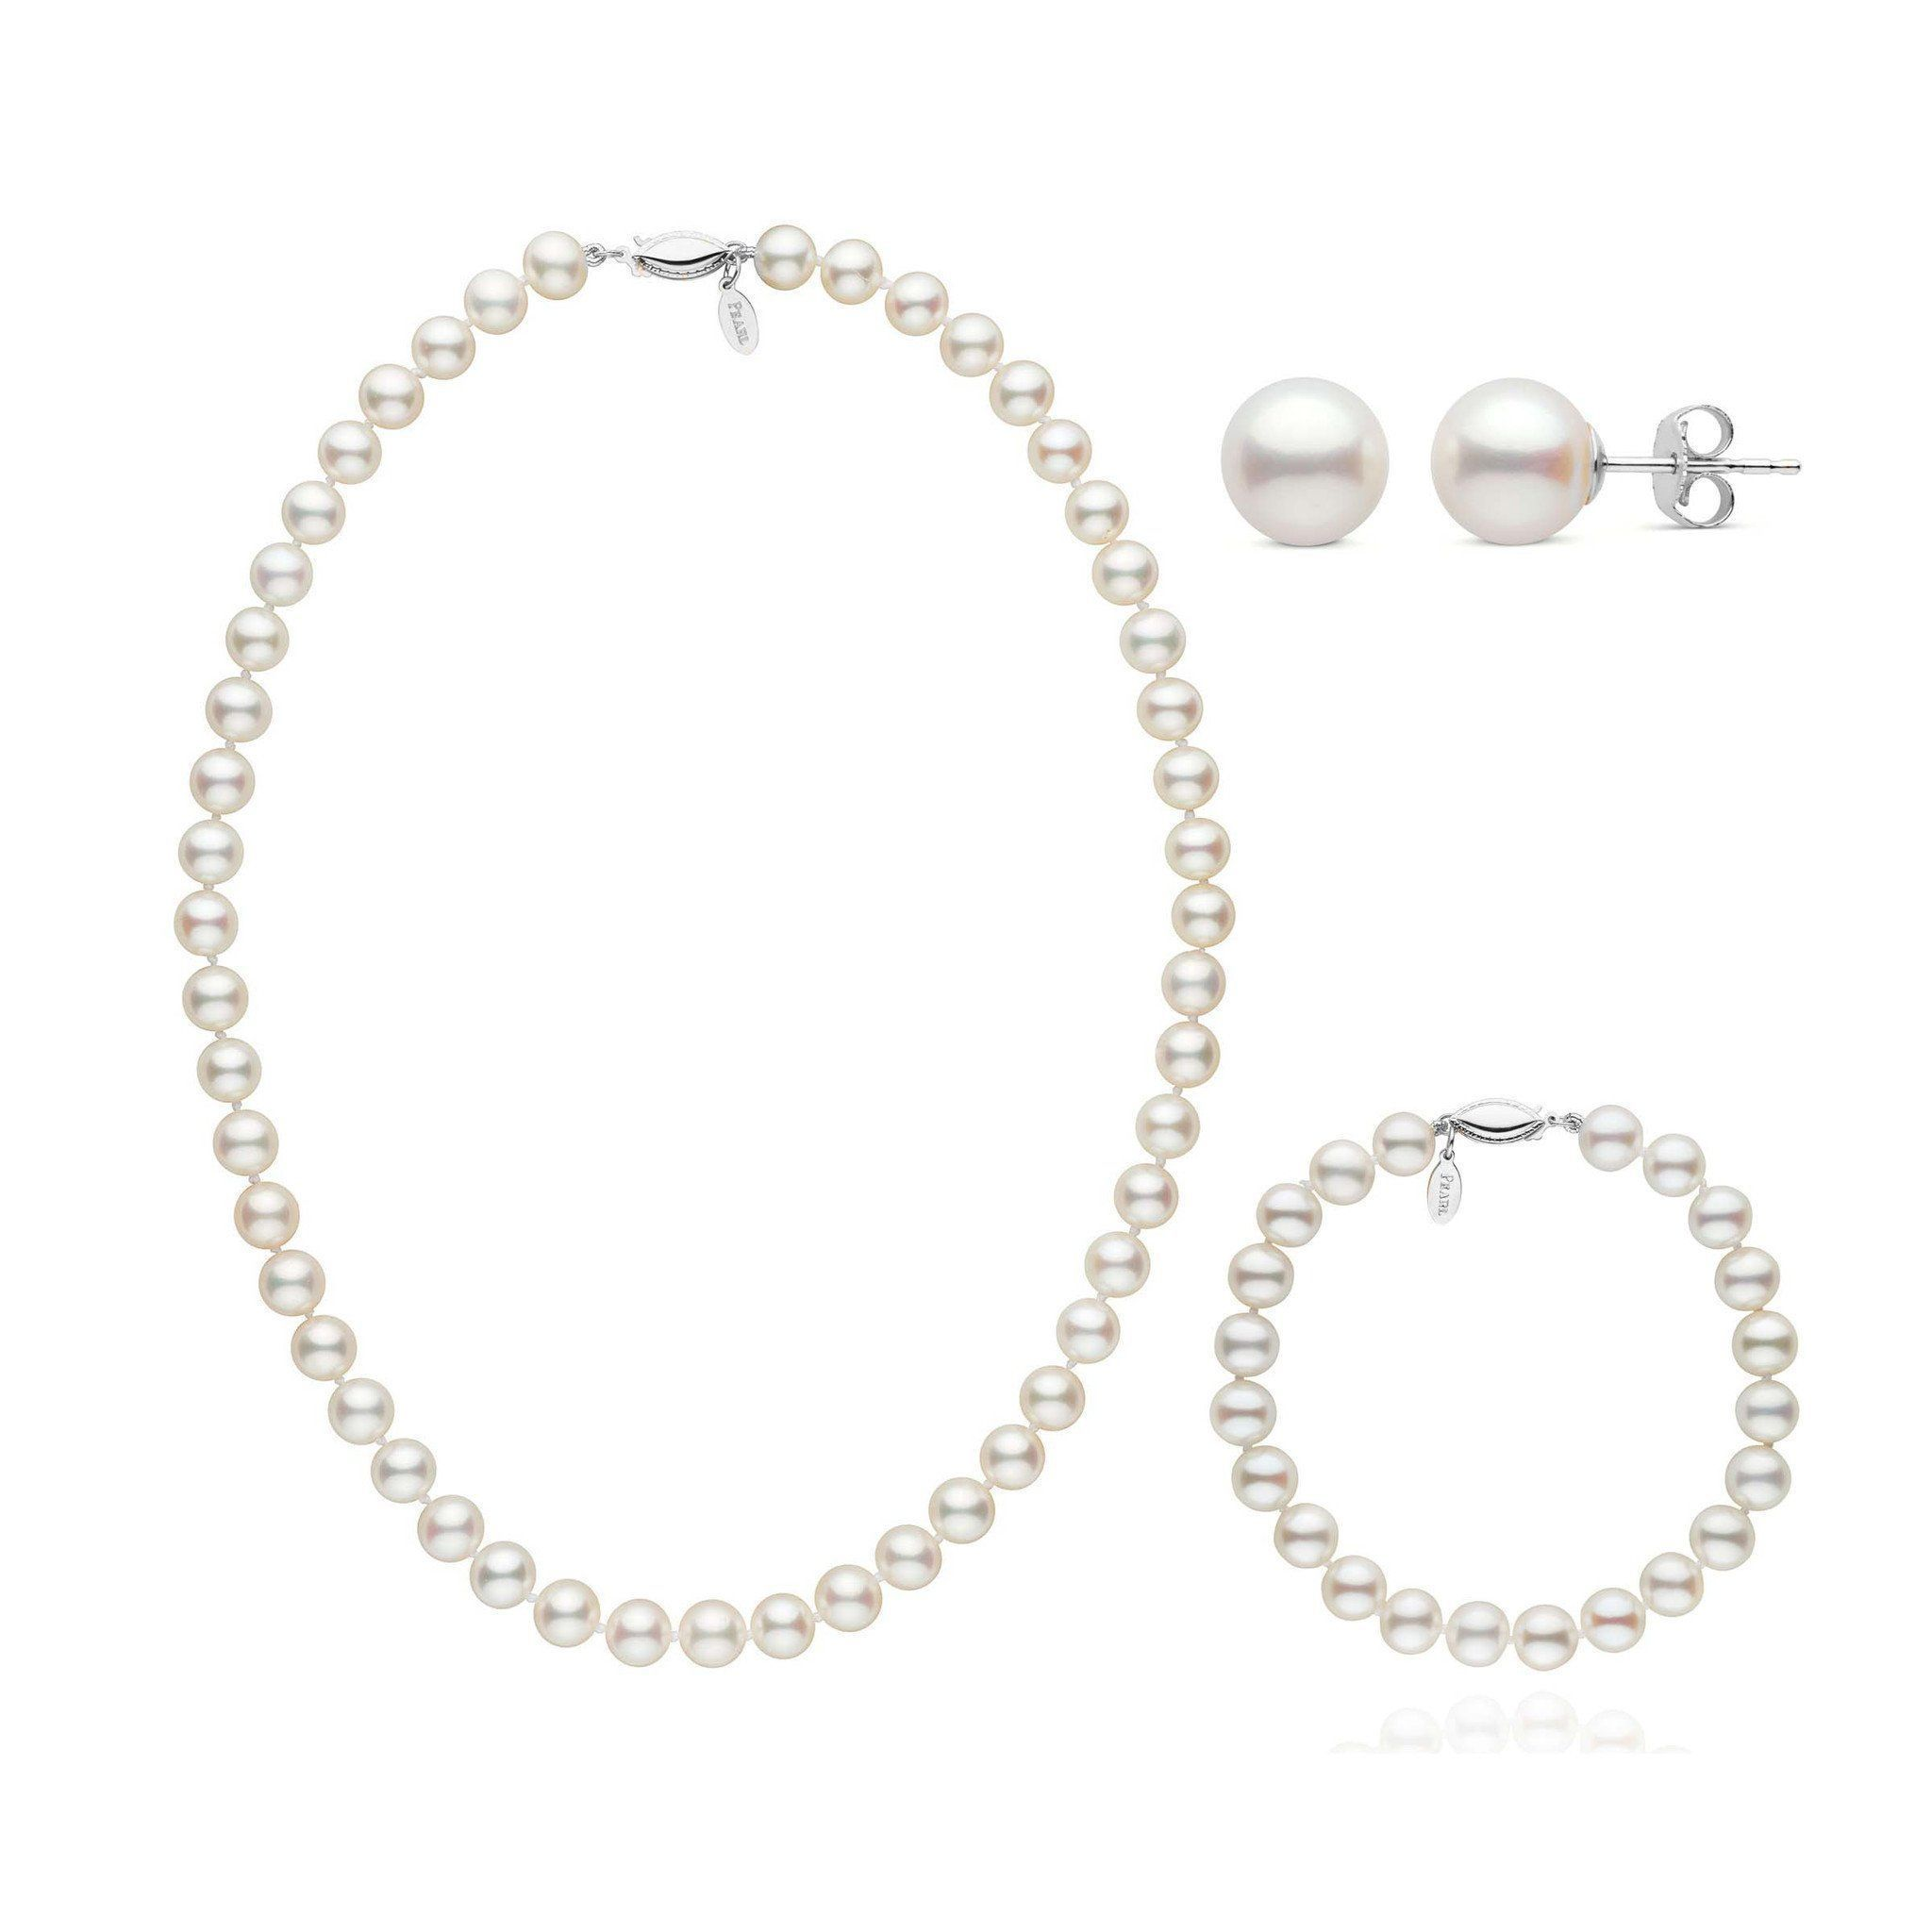 16 Inch 3 Piece 7.5-8.0 mm White Freshadama Freshwater Pearl Set